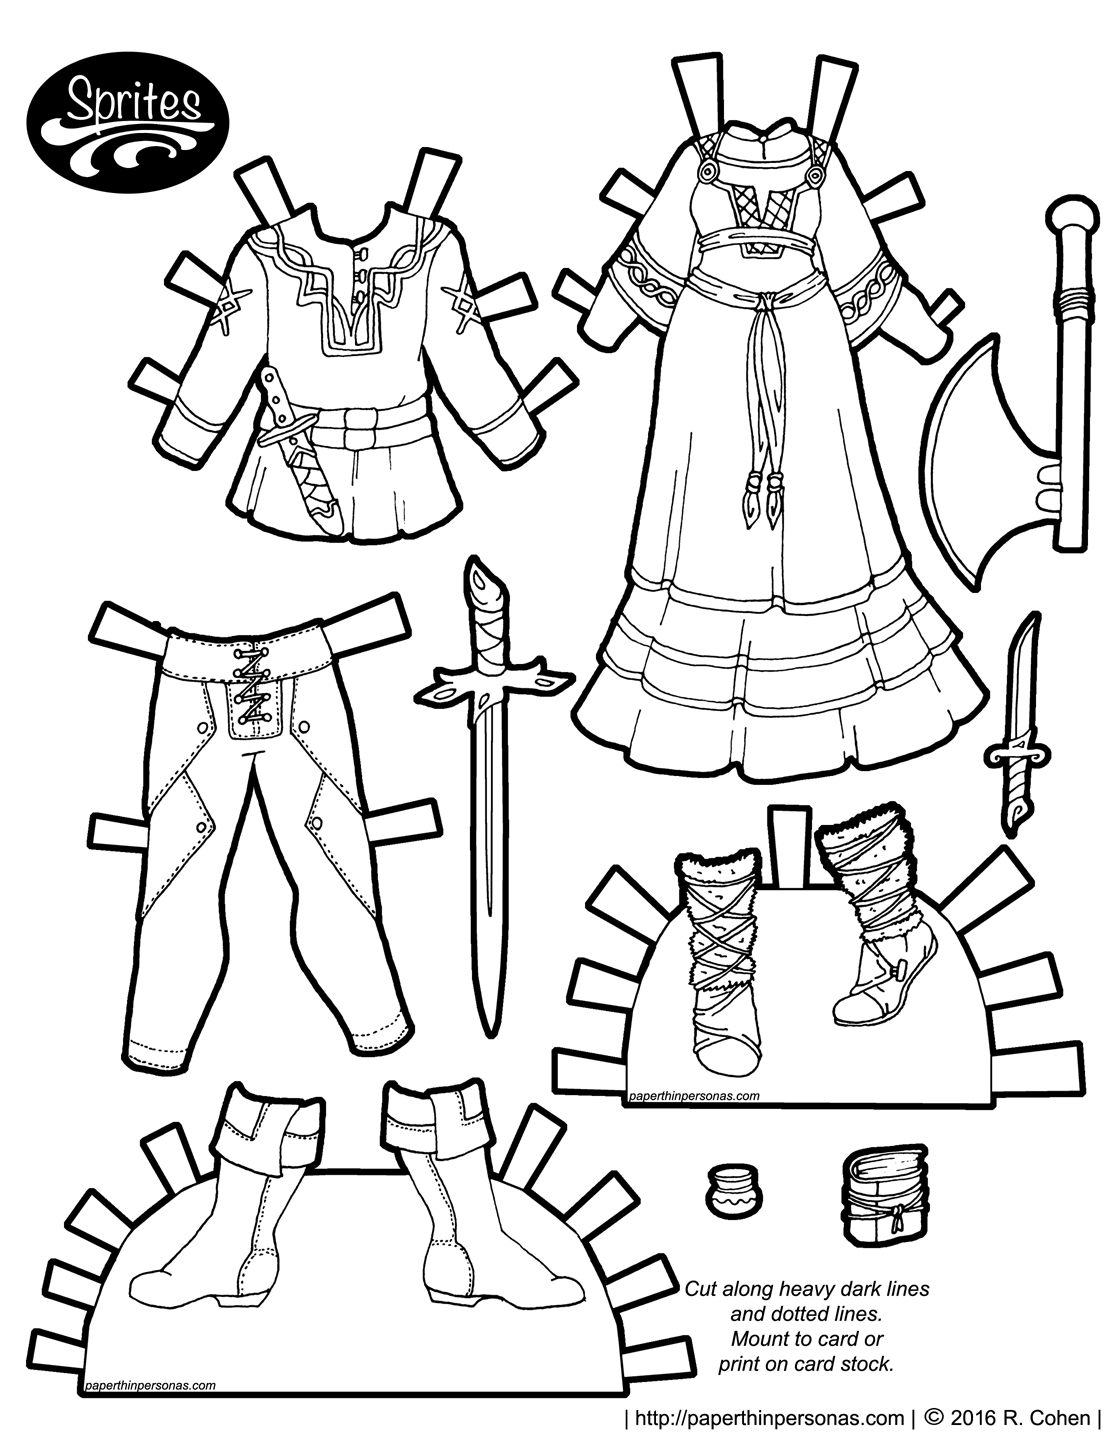 Viking Inspired Fantasy Paper Doll Outfits For A Boy And A